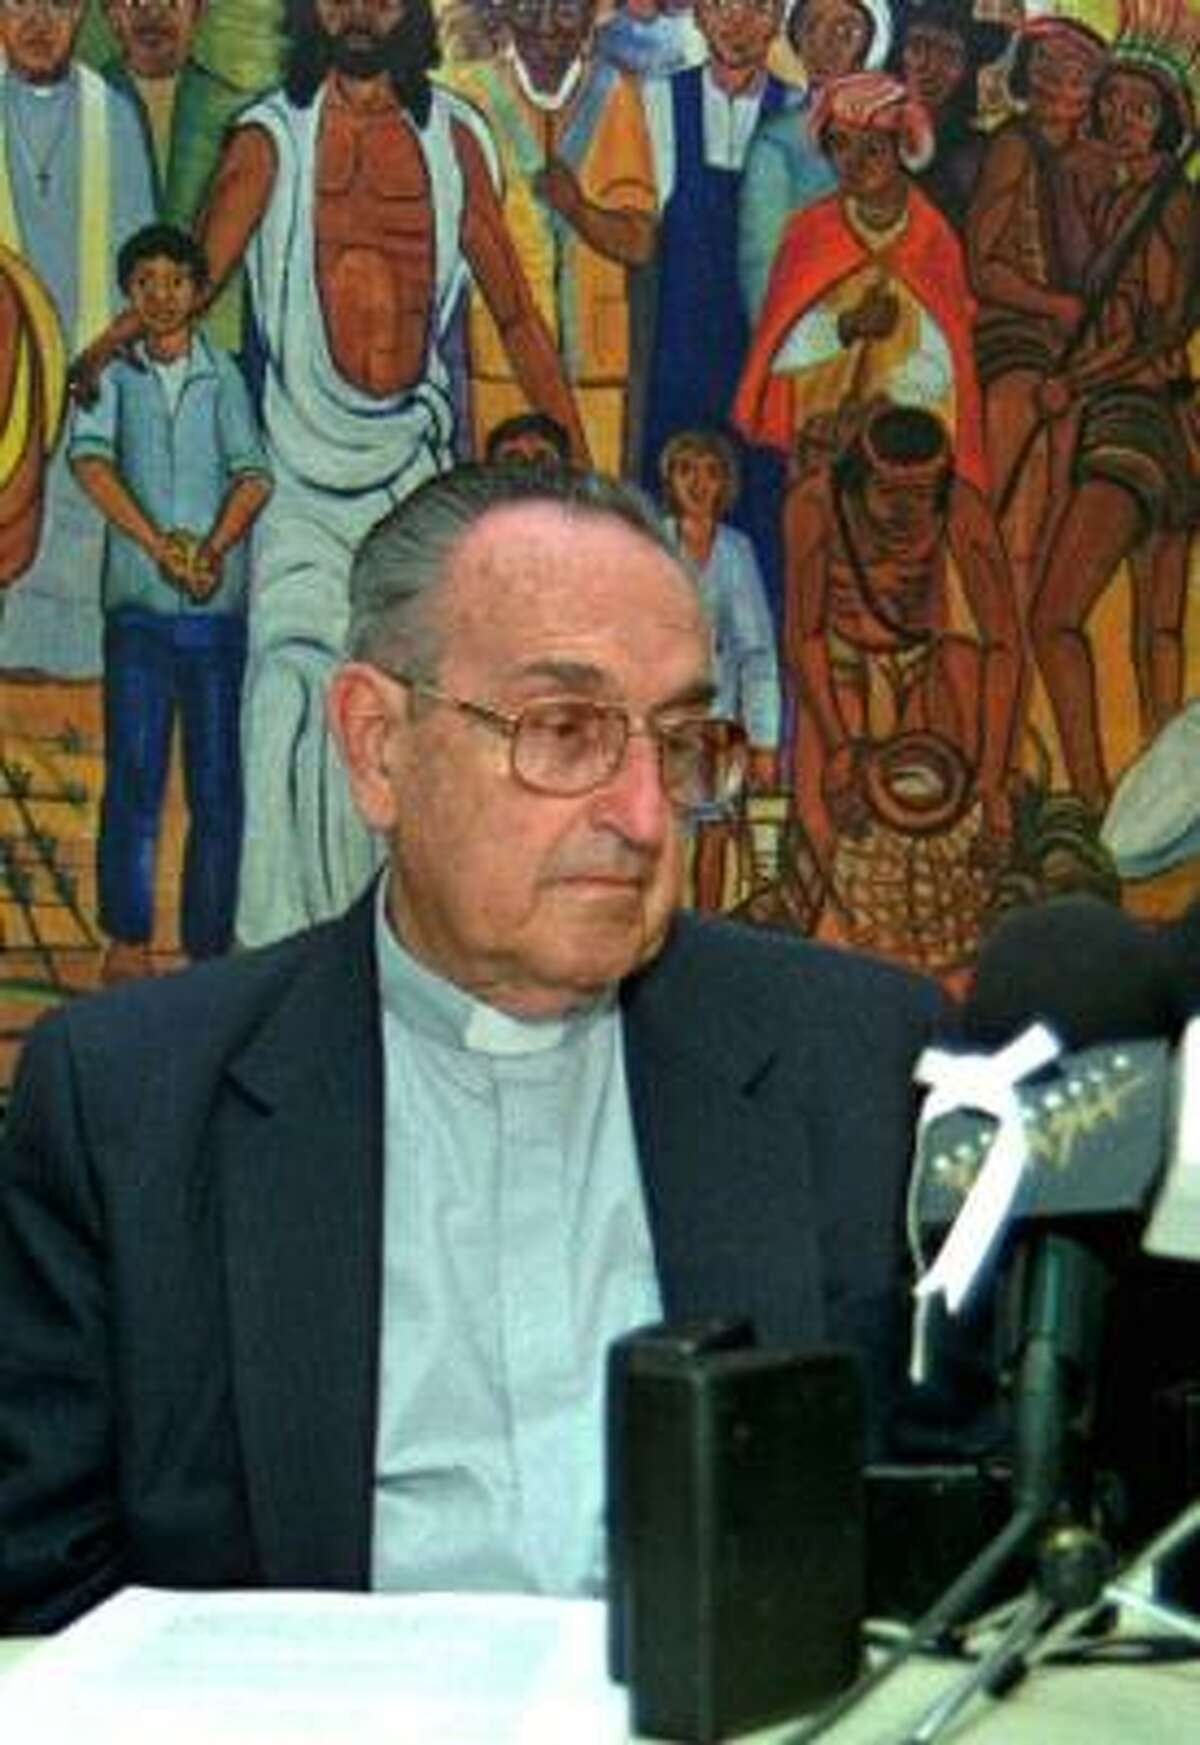 Roman Catholic Bishop Juan Gerardi Conedera, 75, appeared April 23, 1998, in a press conference. The bishop was killed three days later, after publishing a scathing report on human-rights abuses in Guatemala.